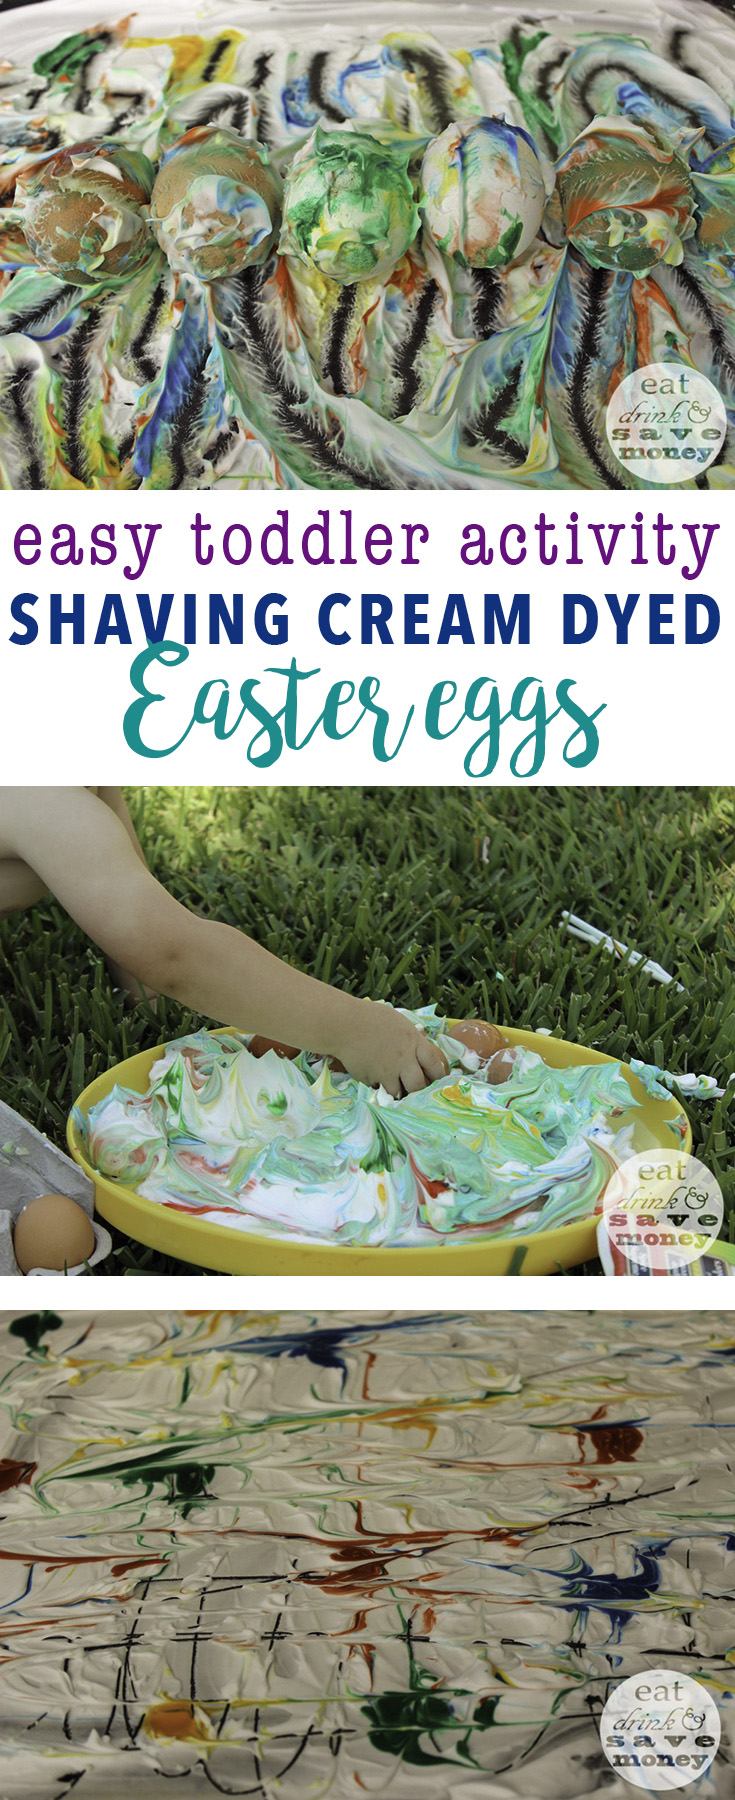 Easy toddler activity- shaving cream dyed Easter eggs are super fun and easy to do with kids and babies